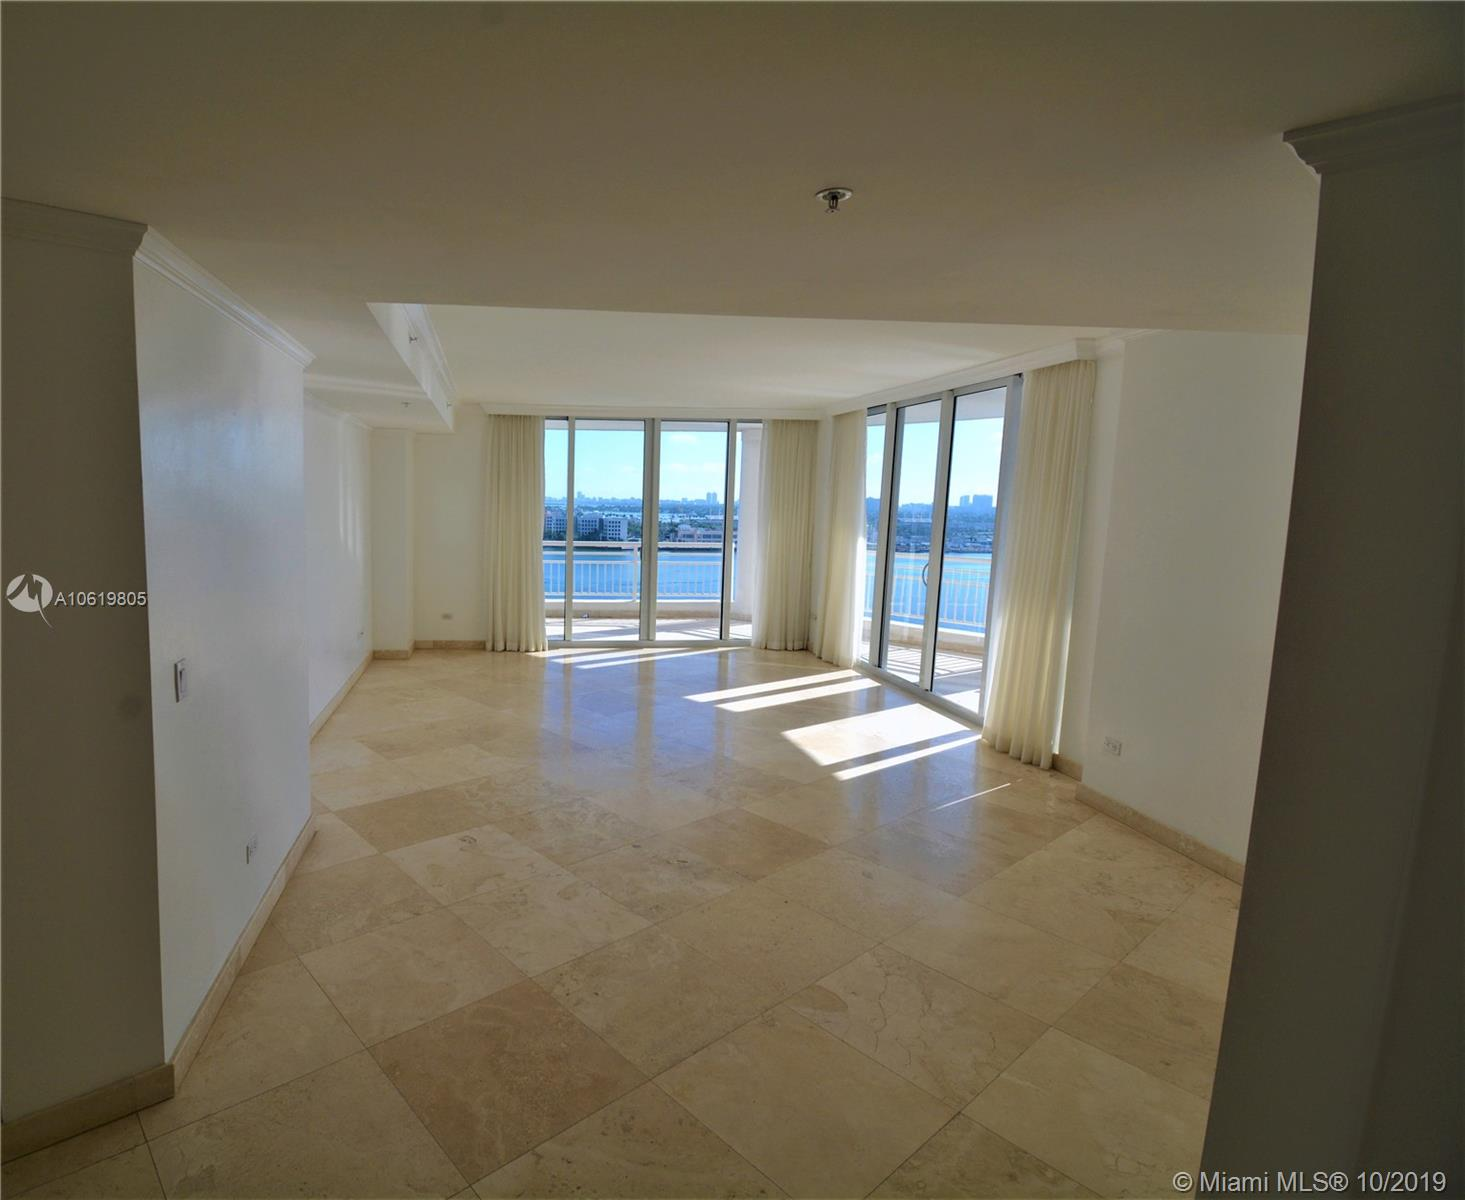 AMAZING CORNER UNIT AT LUXURIOUS TEQUESTA III CONDOMINIUM IN SECLUDED AND PRIVATE BRICKELL KEY.  ENJOY INCREDIBLE WATER VIEWS OF FISHER ISLAND-BISCAYNE BAY-PORT OF MIAMI IN THIS LARGE AND COMFORTABLE 3 BEDROOM 2.5 BATHROOM UNIT.  THIS IS A LARGE UNIT WITH A SPLIT FLOOR PLAN, EAT IN GOURMET KITCHEN, FORMAL DINING AND WRAP AROUND BALCONY.  THIS IS A MUST SEE APARTMENT, THAT OFFER RESORT LIKE AMENITIES, INDOOR RACKETBALL/SQUASH COURTS, TENNIS COURTS, FULLY EQUIPPED TWO STORY GYM, BAY SIDE LUXURIOUS HEATED POOL, COVERED BBQ AREA, 24 HR SECURITY, AND MUCH MORE. AVAILABLE NOW.